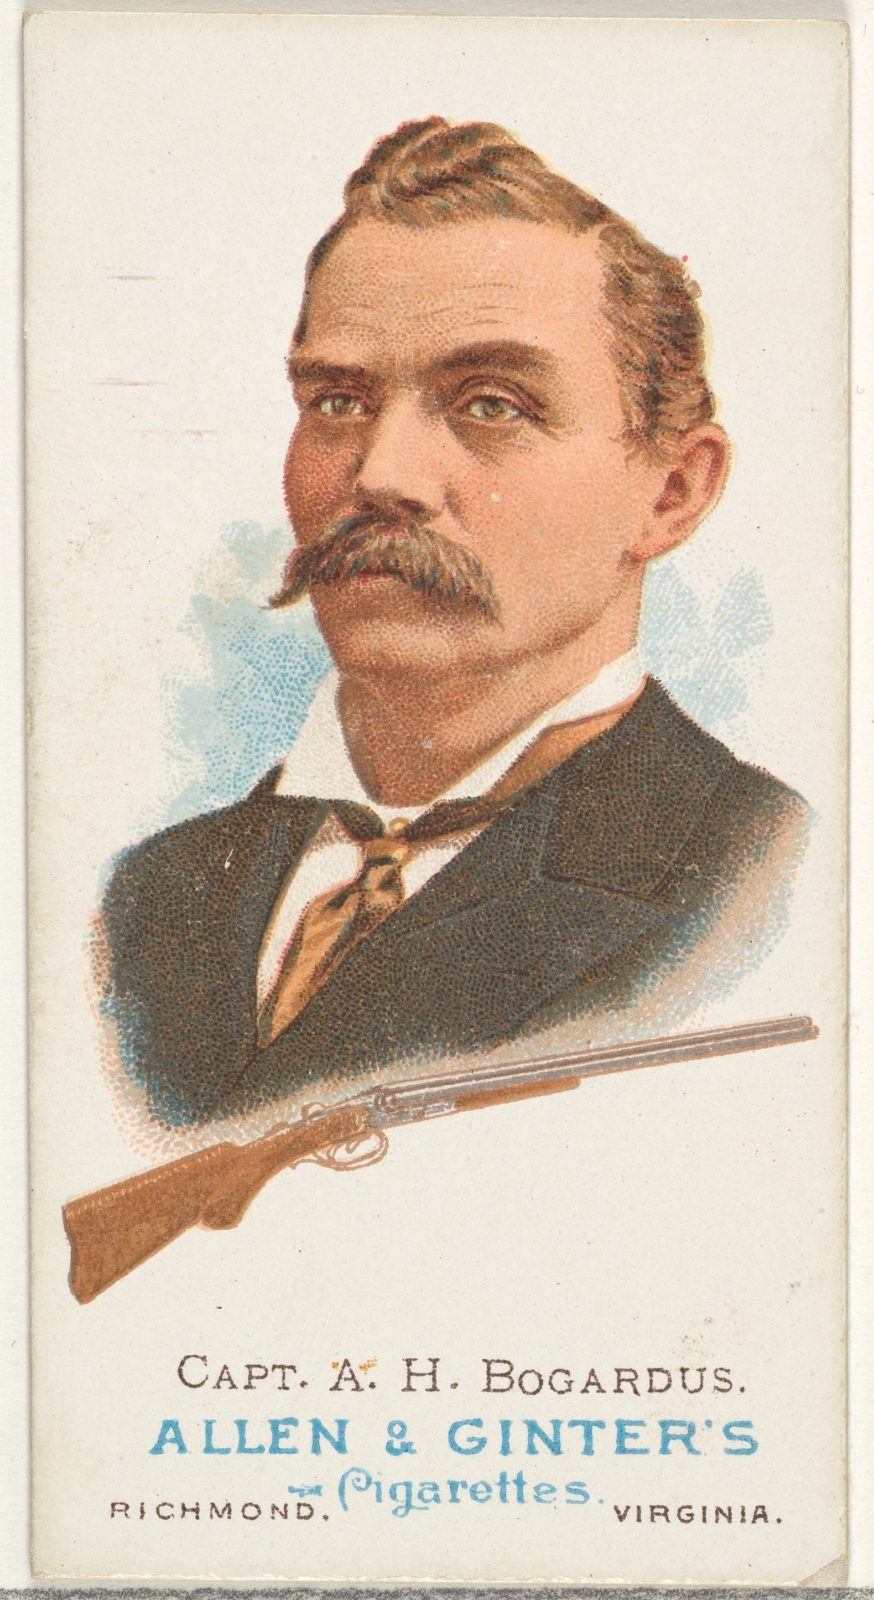 Captain Adam Henry Bogardus, Rifle Shooter, from World's Champions, Series 1 (N28) for Allen & Ginter Cigarettes